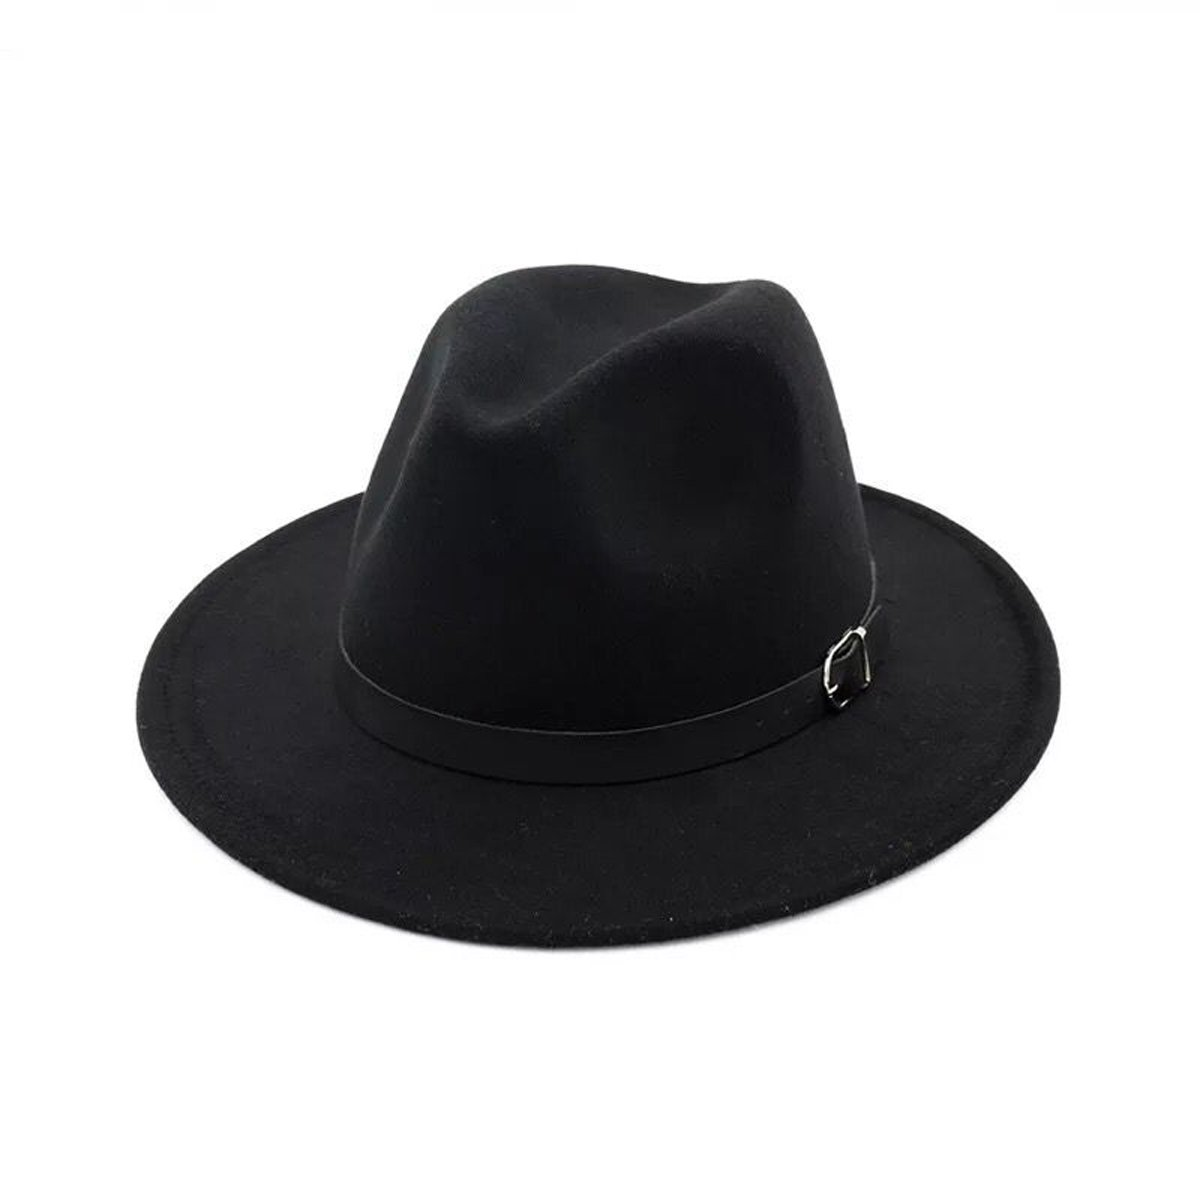 Lanzom Women Men Retro Style Wide Brim Panama Hat Belt Buckle Wool Fedora Hat (Black, One Size)